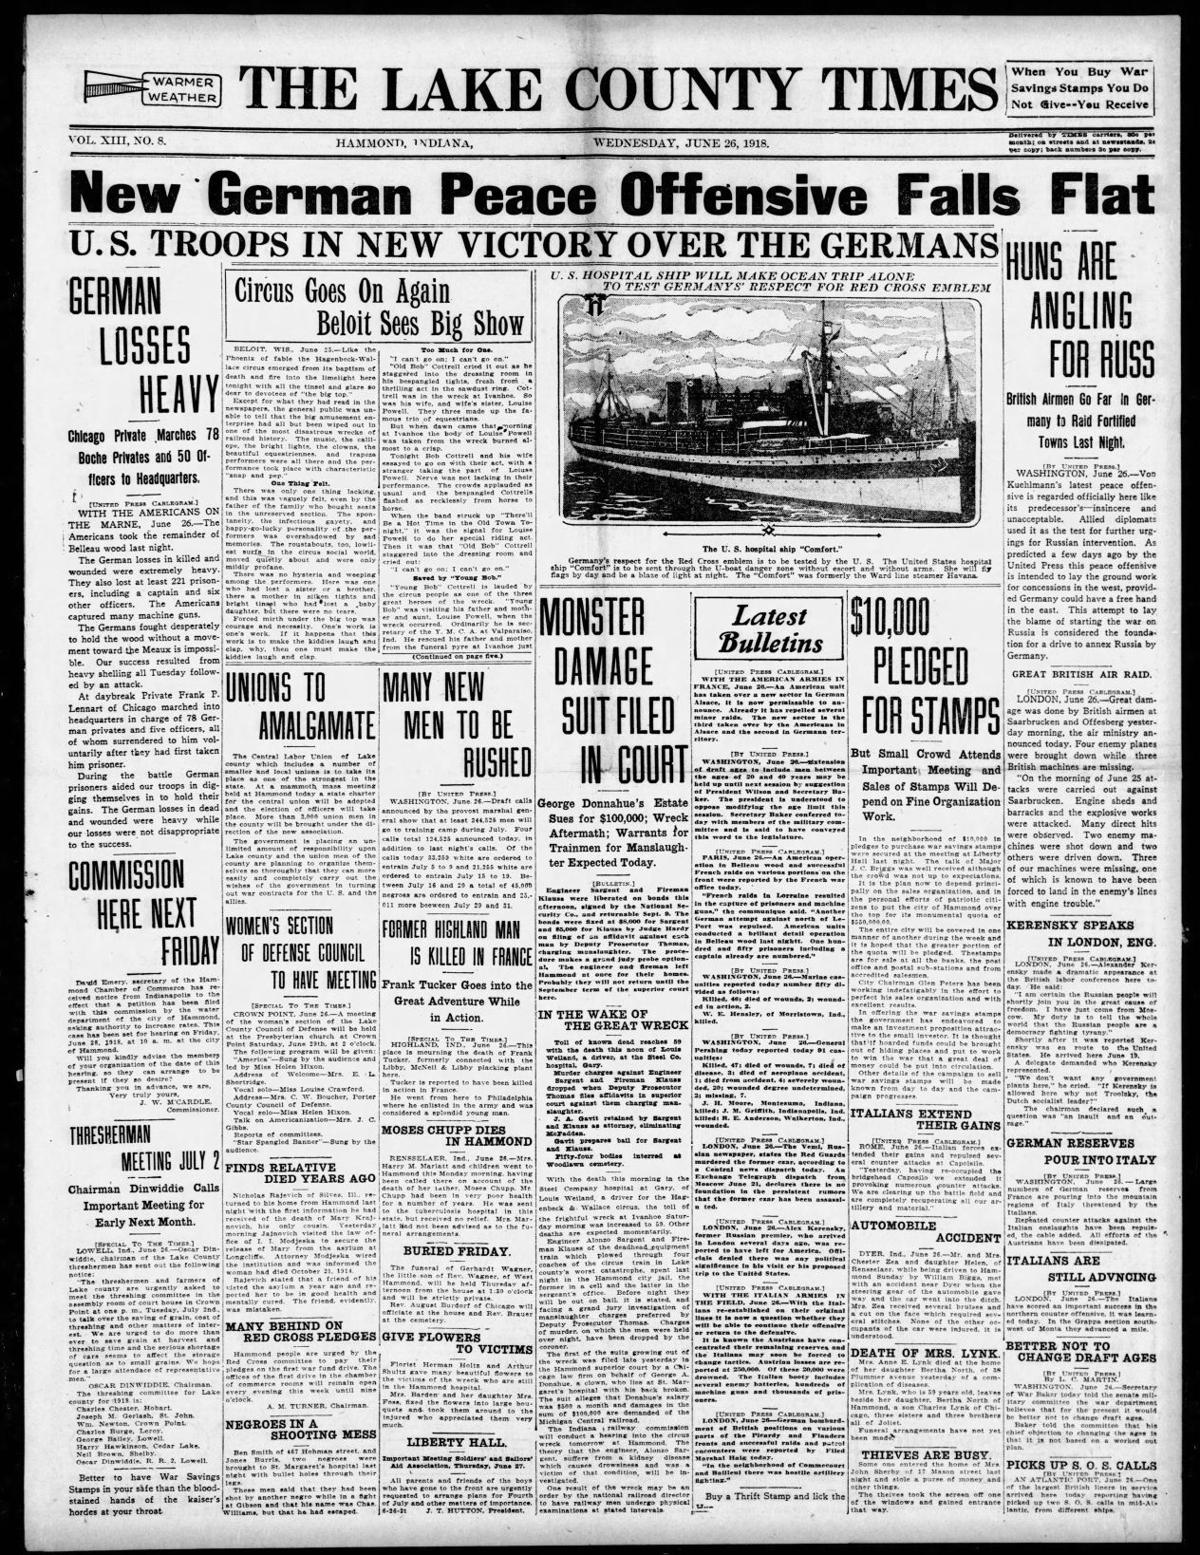 June 26, 1918: Circus Goes On Again, Beloit Sees Big Show